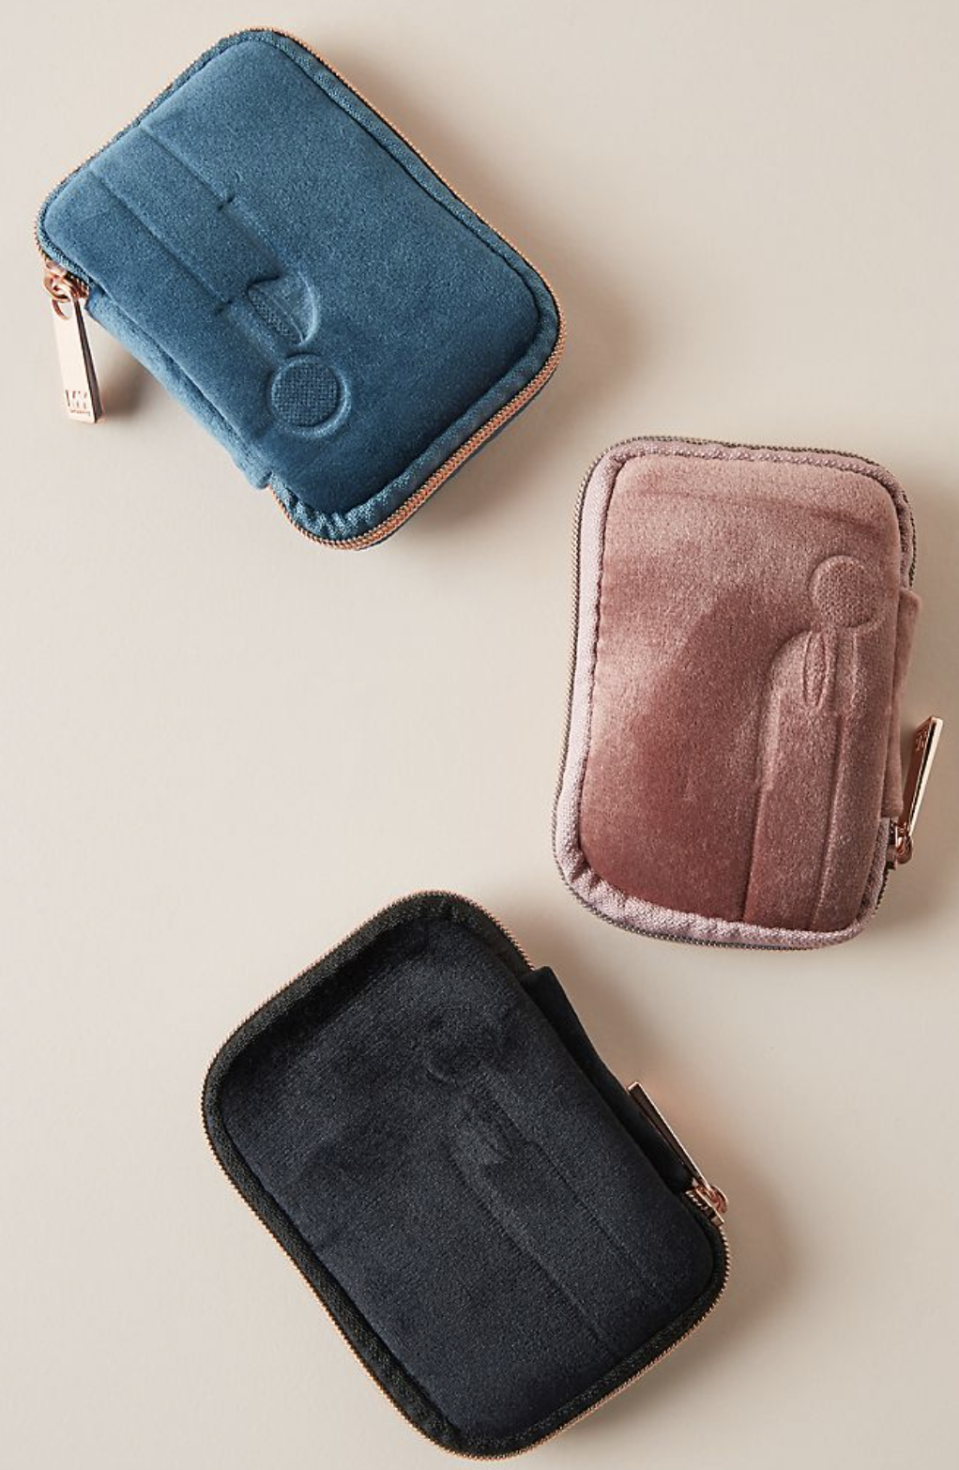 Vixen Earbud Case - Anthropologie, $13 ($10 USD)